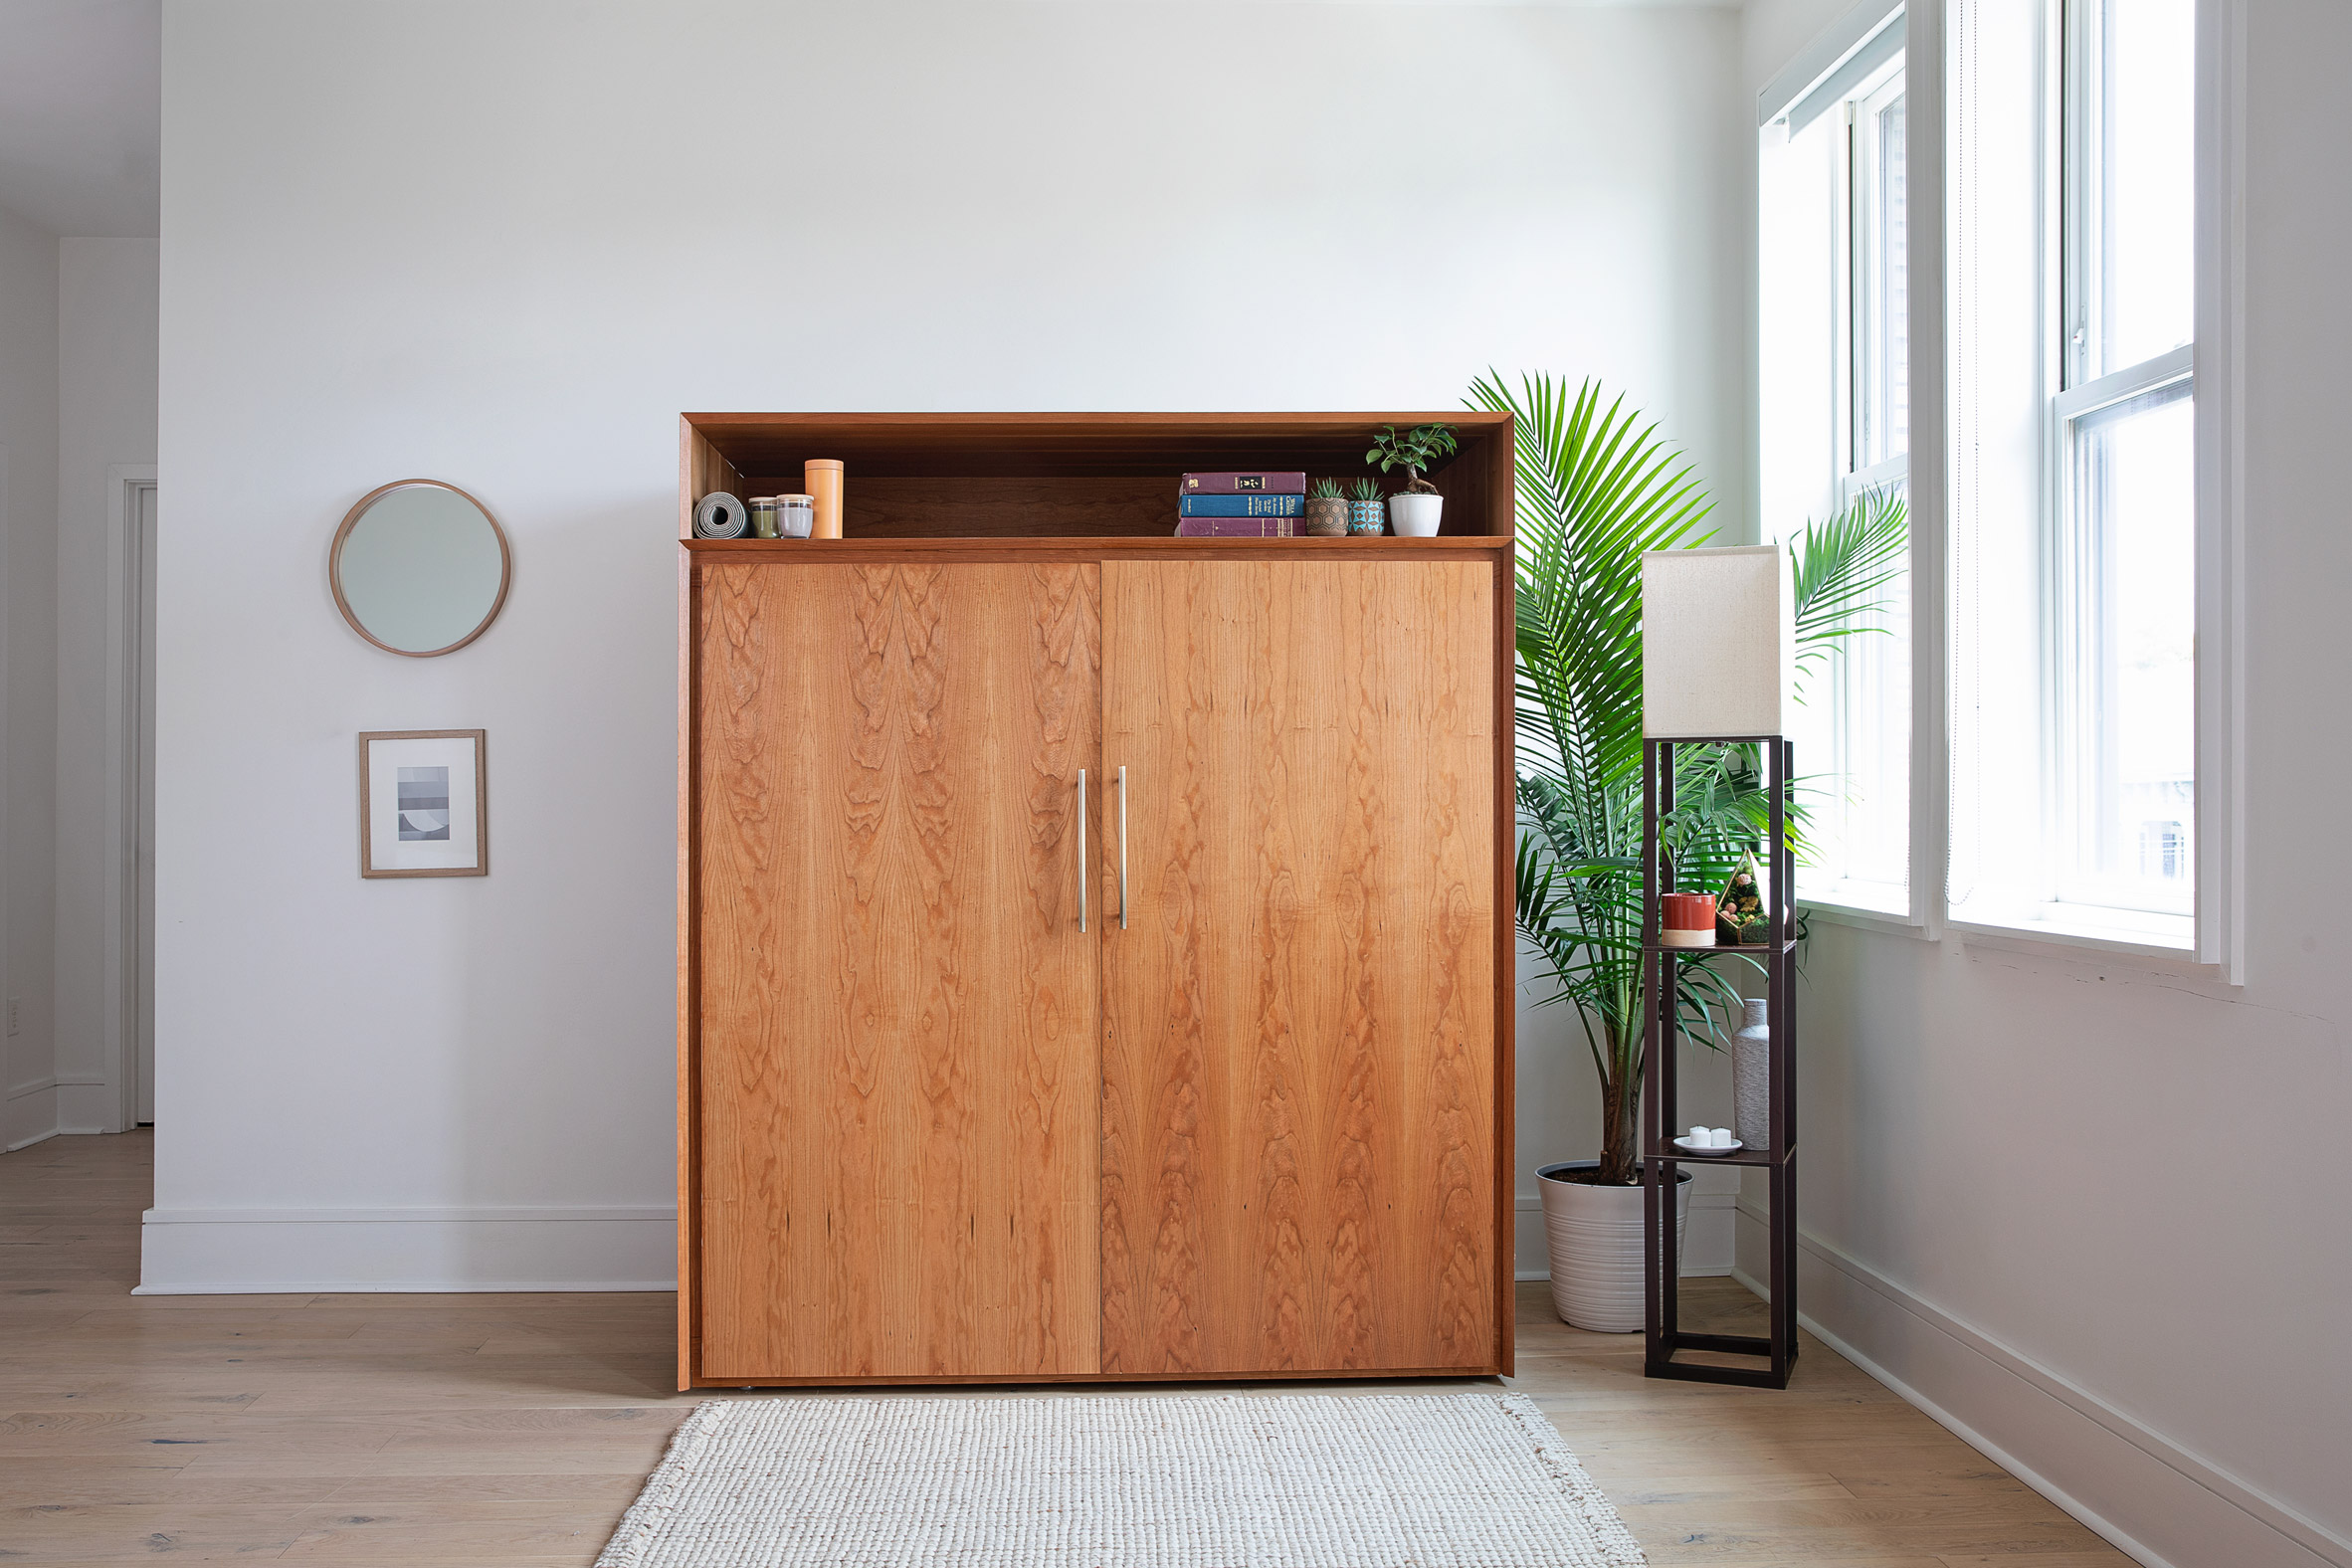 Wooden cabinet in mid-century style in a minimal white apartment hallway